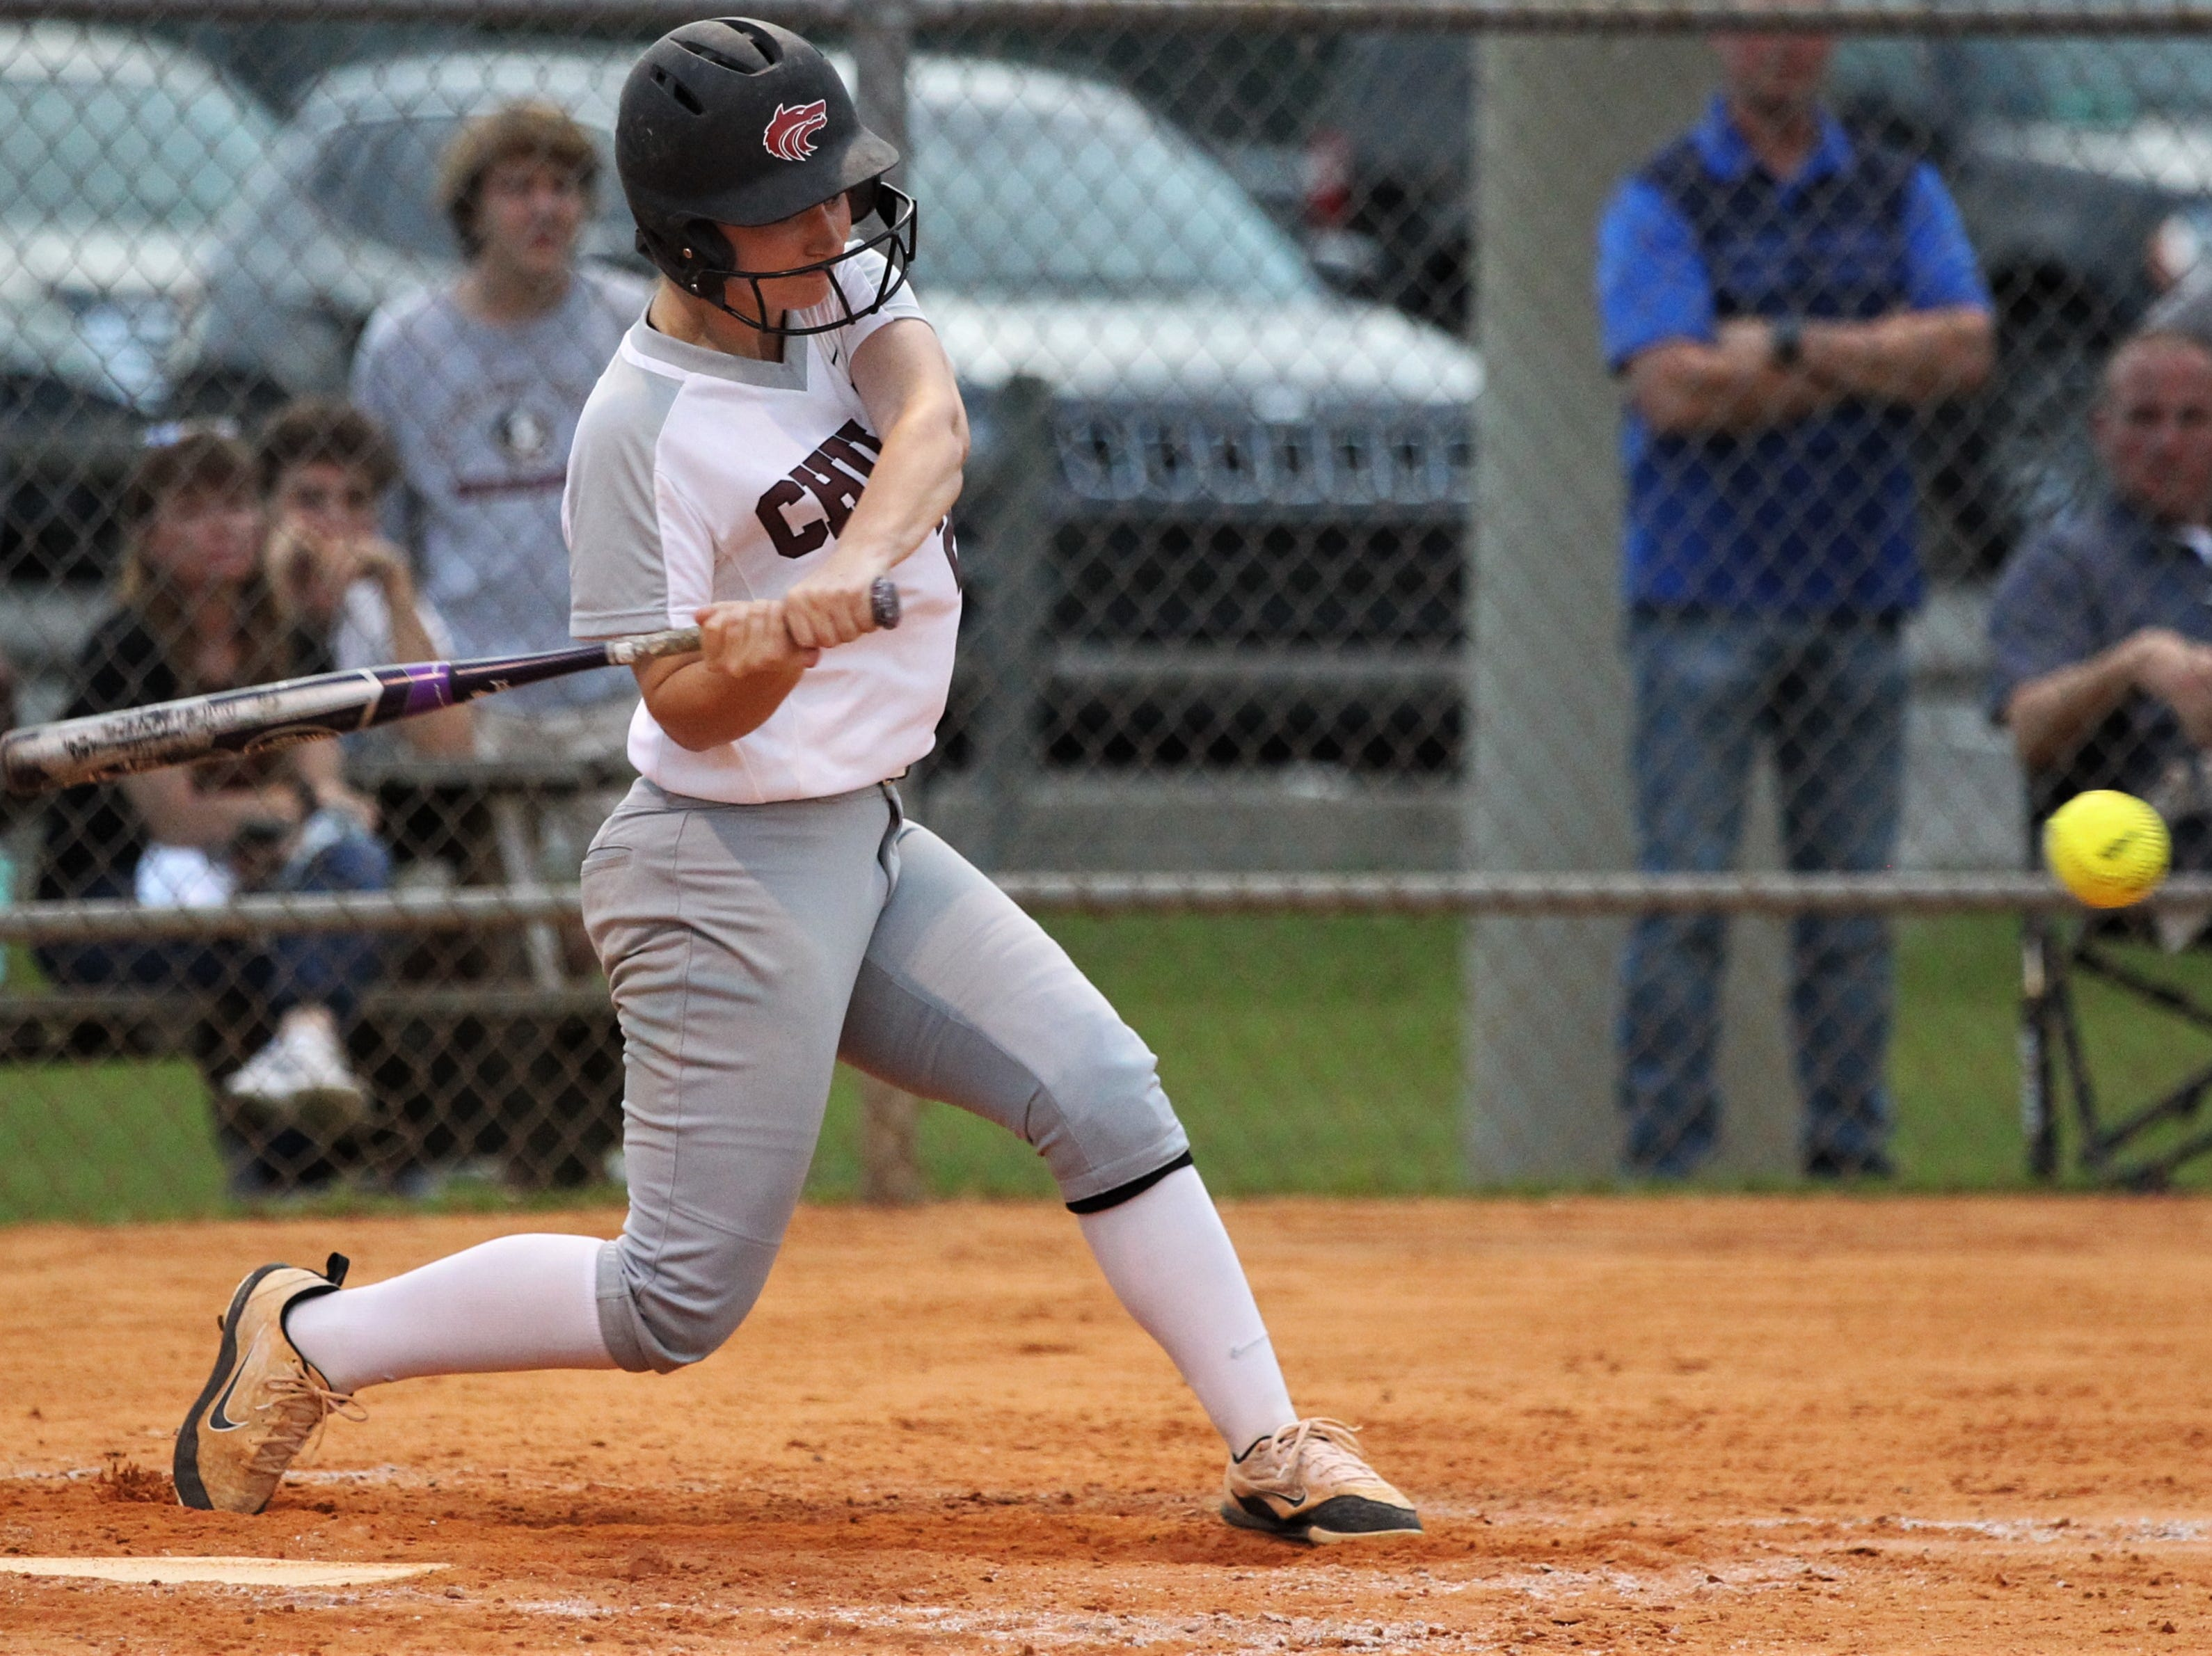 Chiles junior Sierra Jevyak bats as the Timberwolves beat Atlantic Coast 6-4 during a Region 1-8A quarterfinal softball game on Wednesday, May 8, 2019.